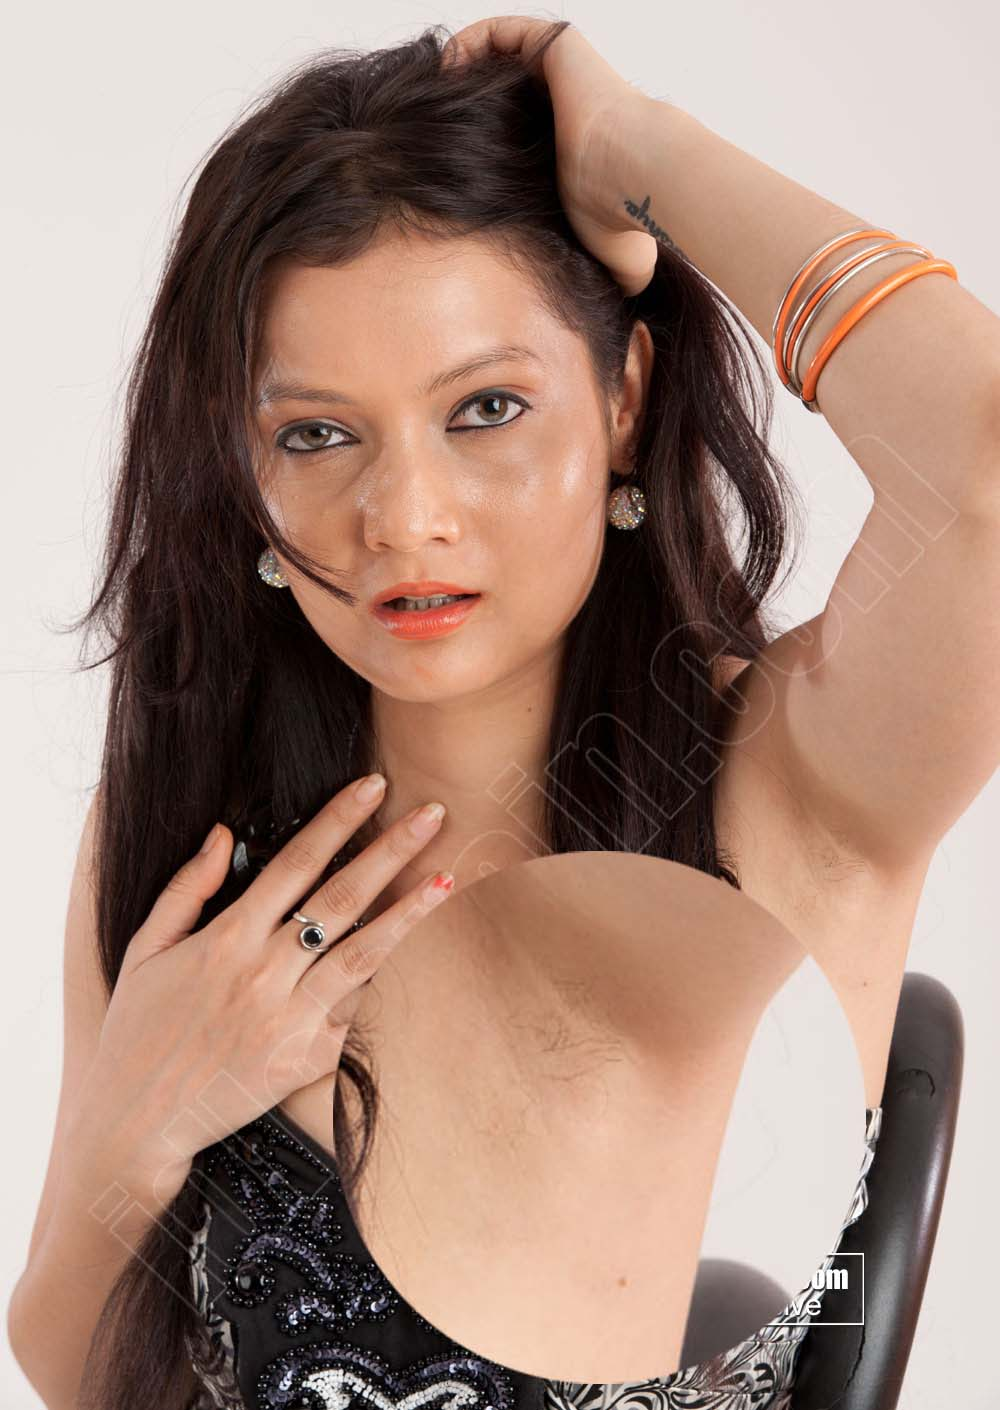 Hairy Armpit Indian Aunty in armpit show | daily bollywood and south indian actresses pictures